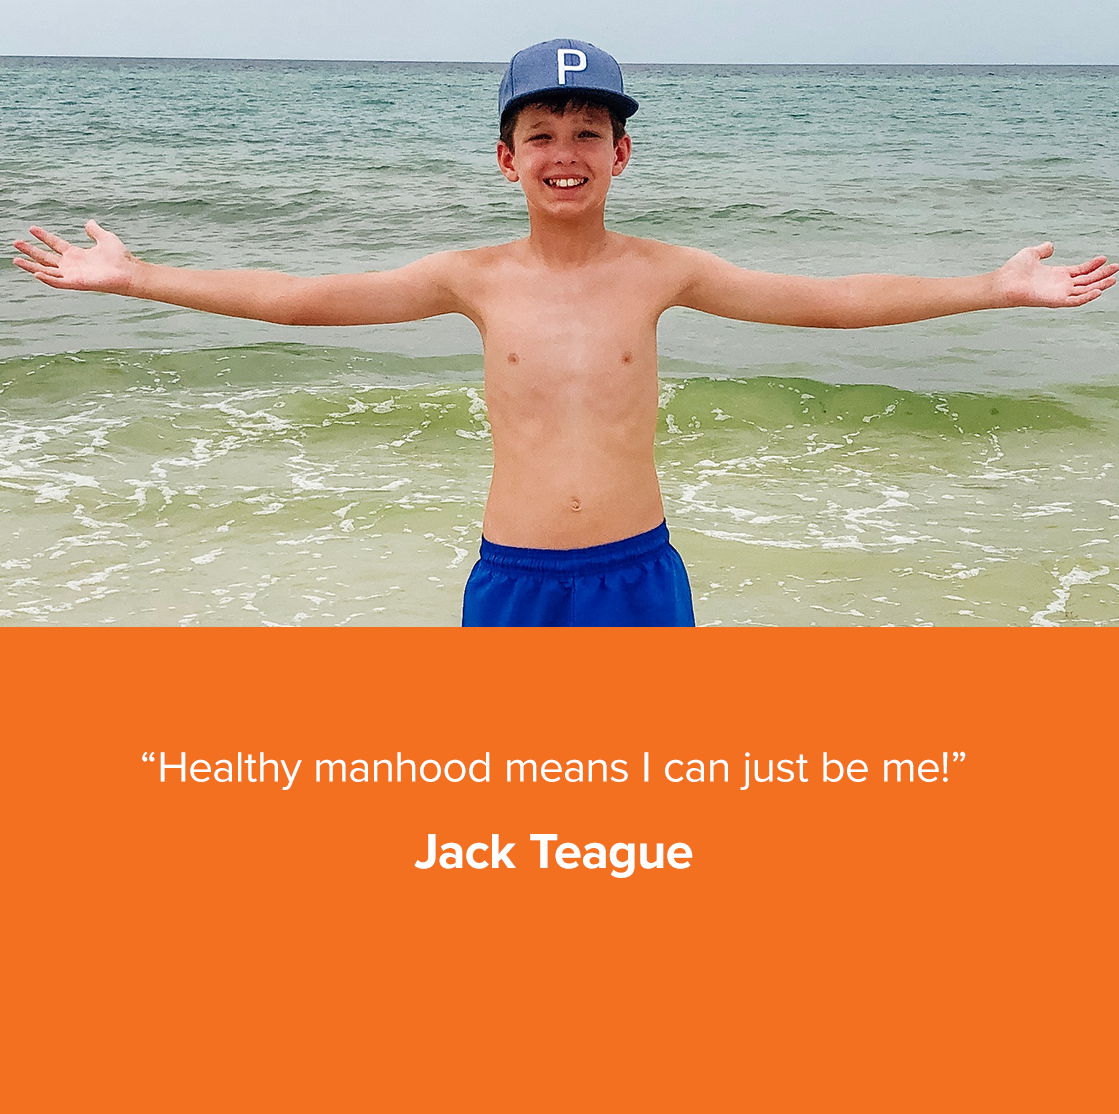 Connecting-Worldwide-QuotesJack-Teague.png